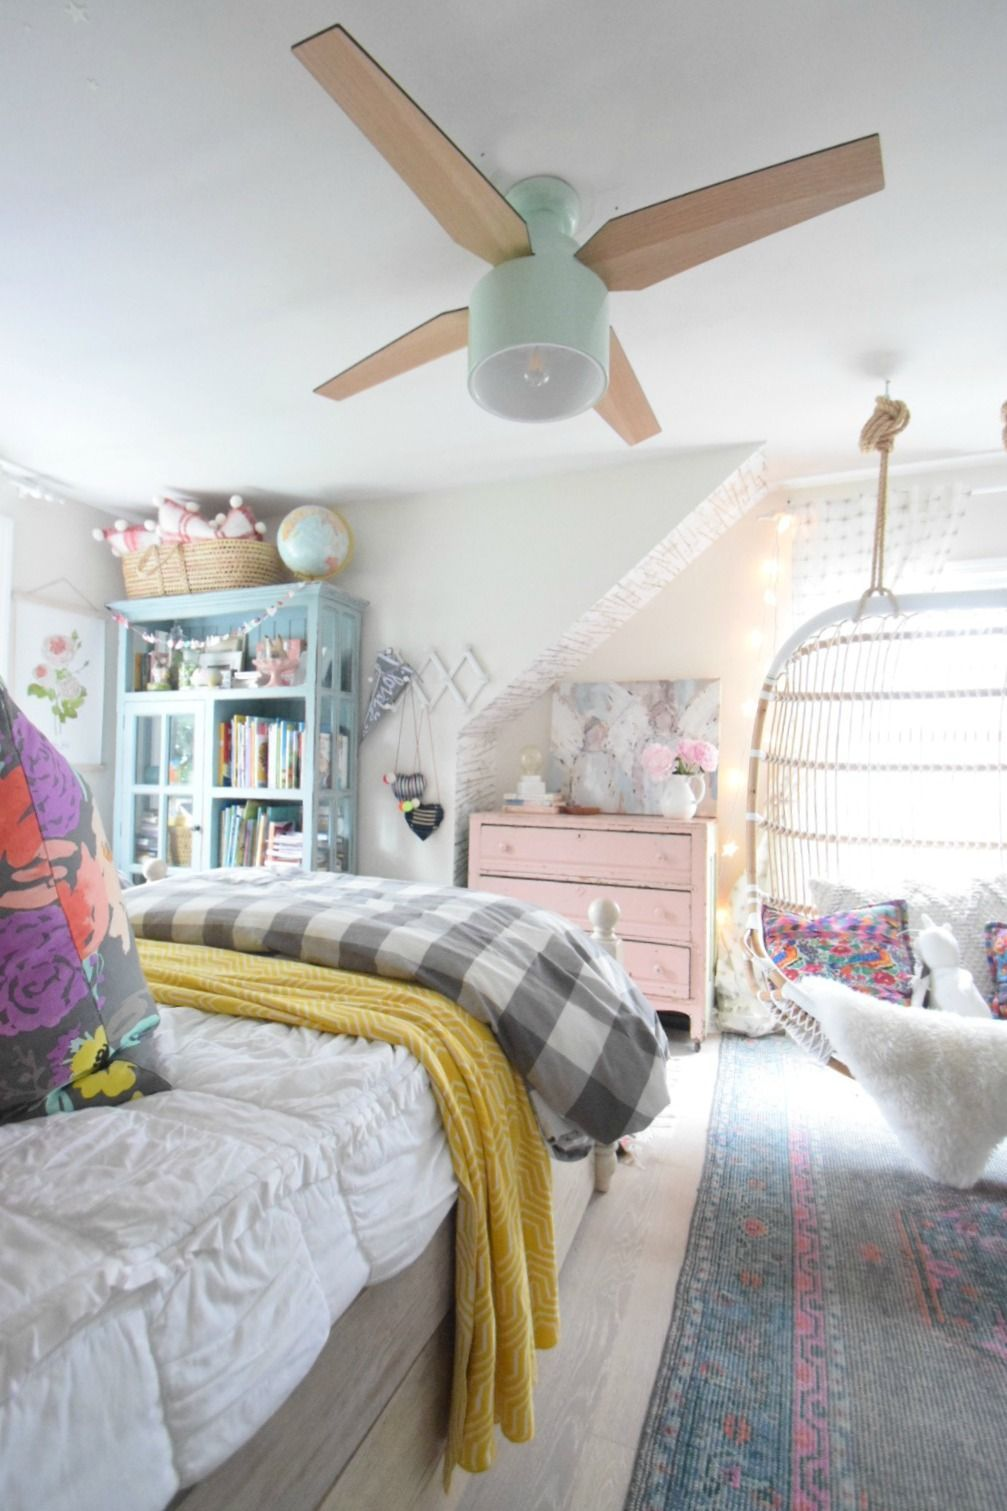 Modern Ceiling Fans | Interior Decor Ideas | Kids bedroom designs ...